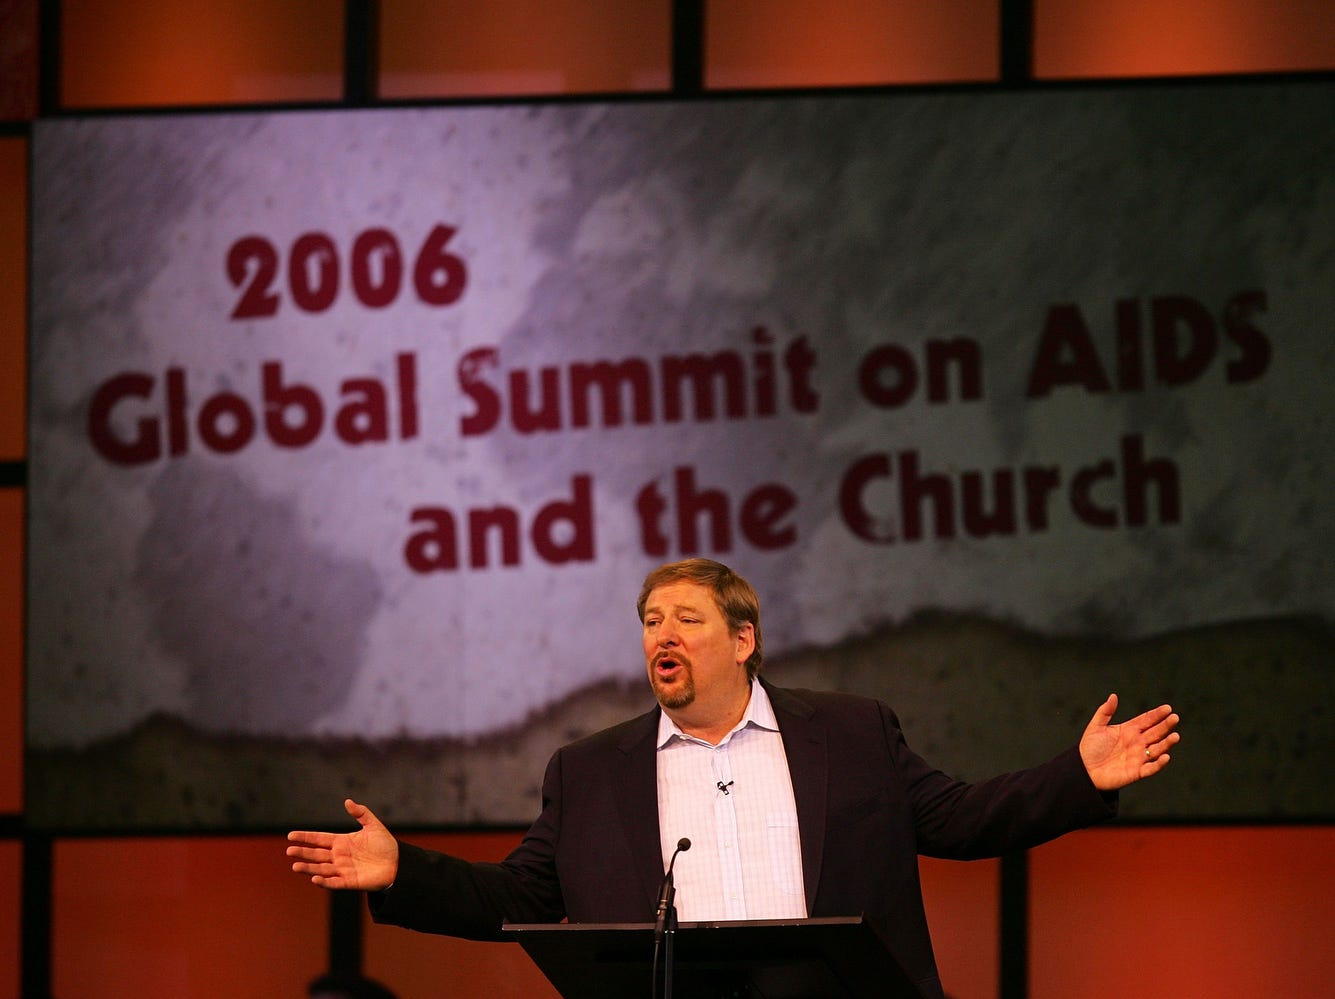 Saddleback Church Pastor Rick Warren speaks at theGlobal Summit on AIDS and The Church, at Saddleback Church on Dec. 1, 2006, in Lake Forest, Calif. Warren drew criticism for inviting Sen. Barack Obama to the conference because of his support of a woman's right to an abortion. Warren embraced Obama after his August visit to Africa where he took a highly-publicized AIDS test.